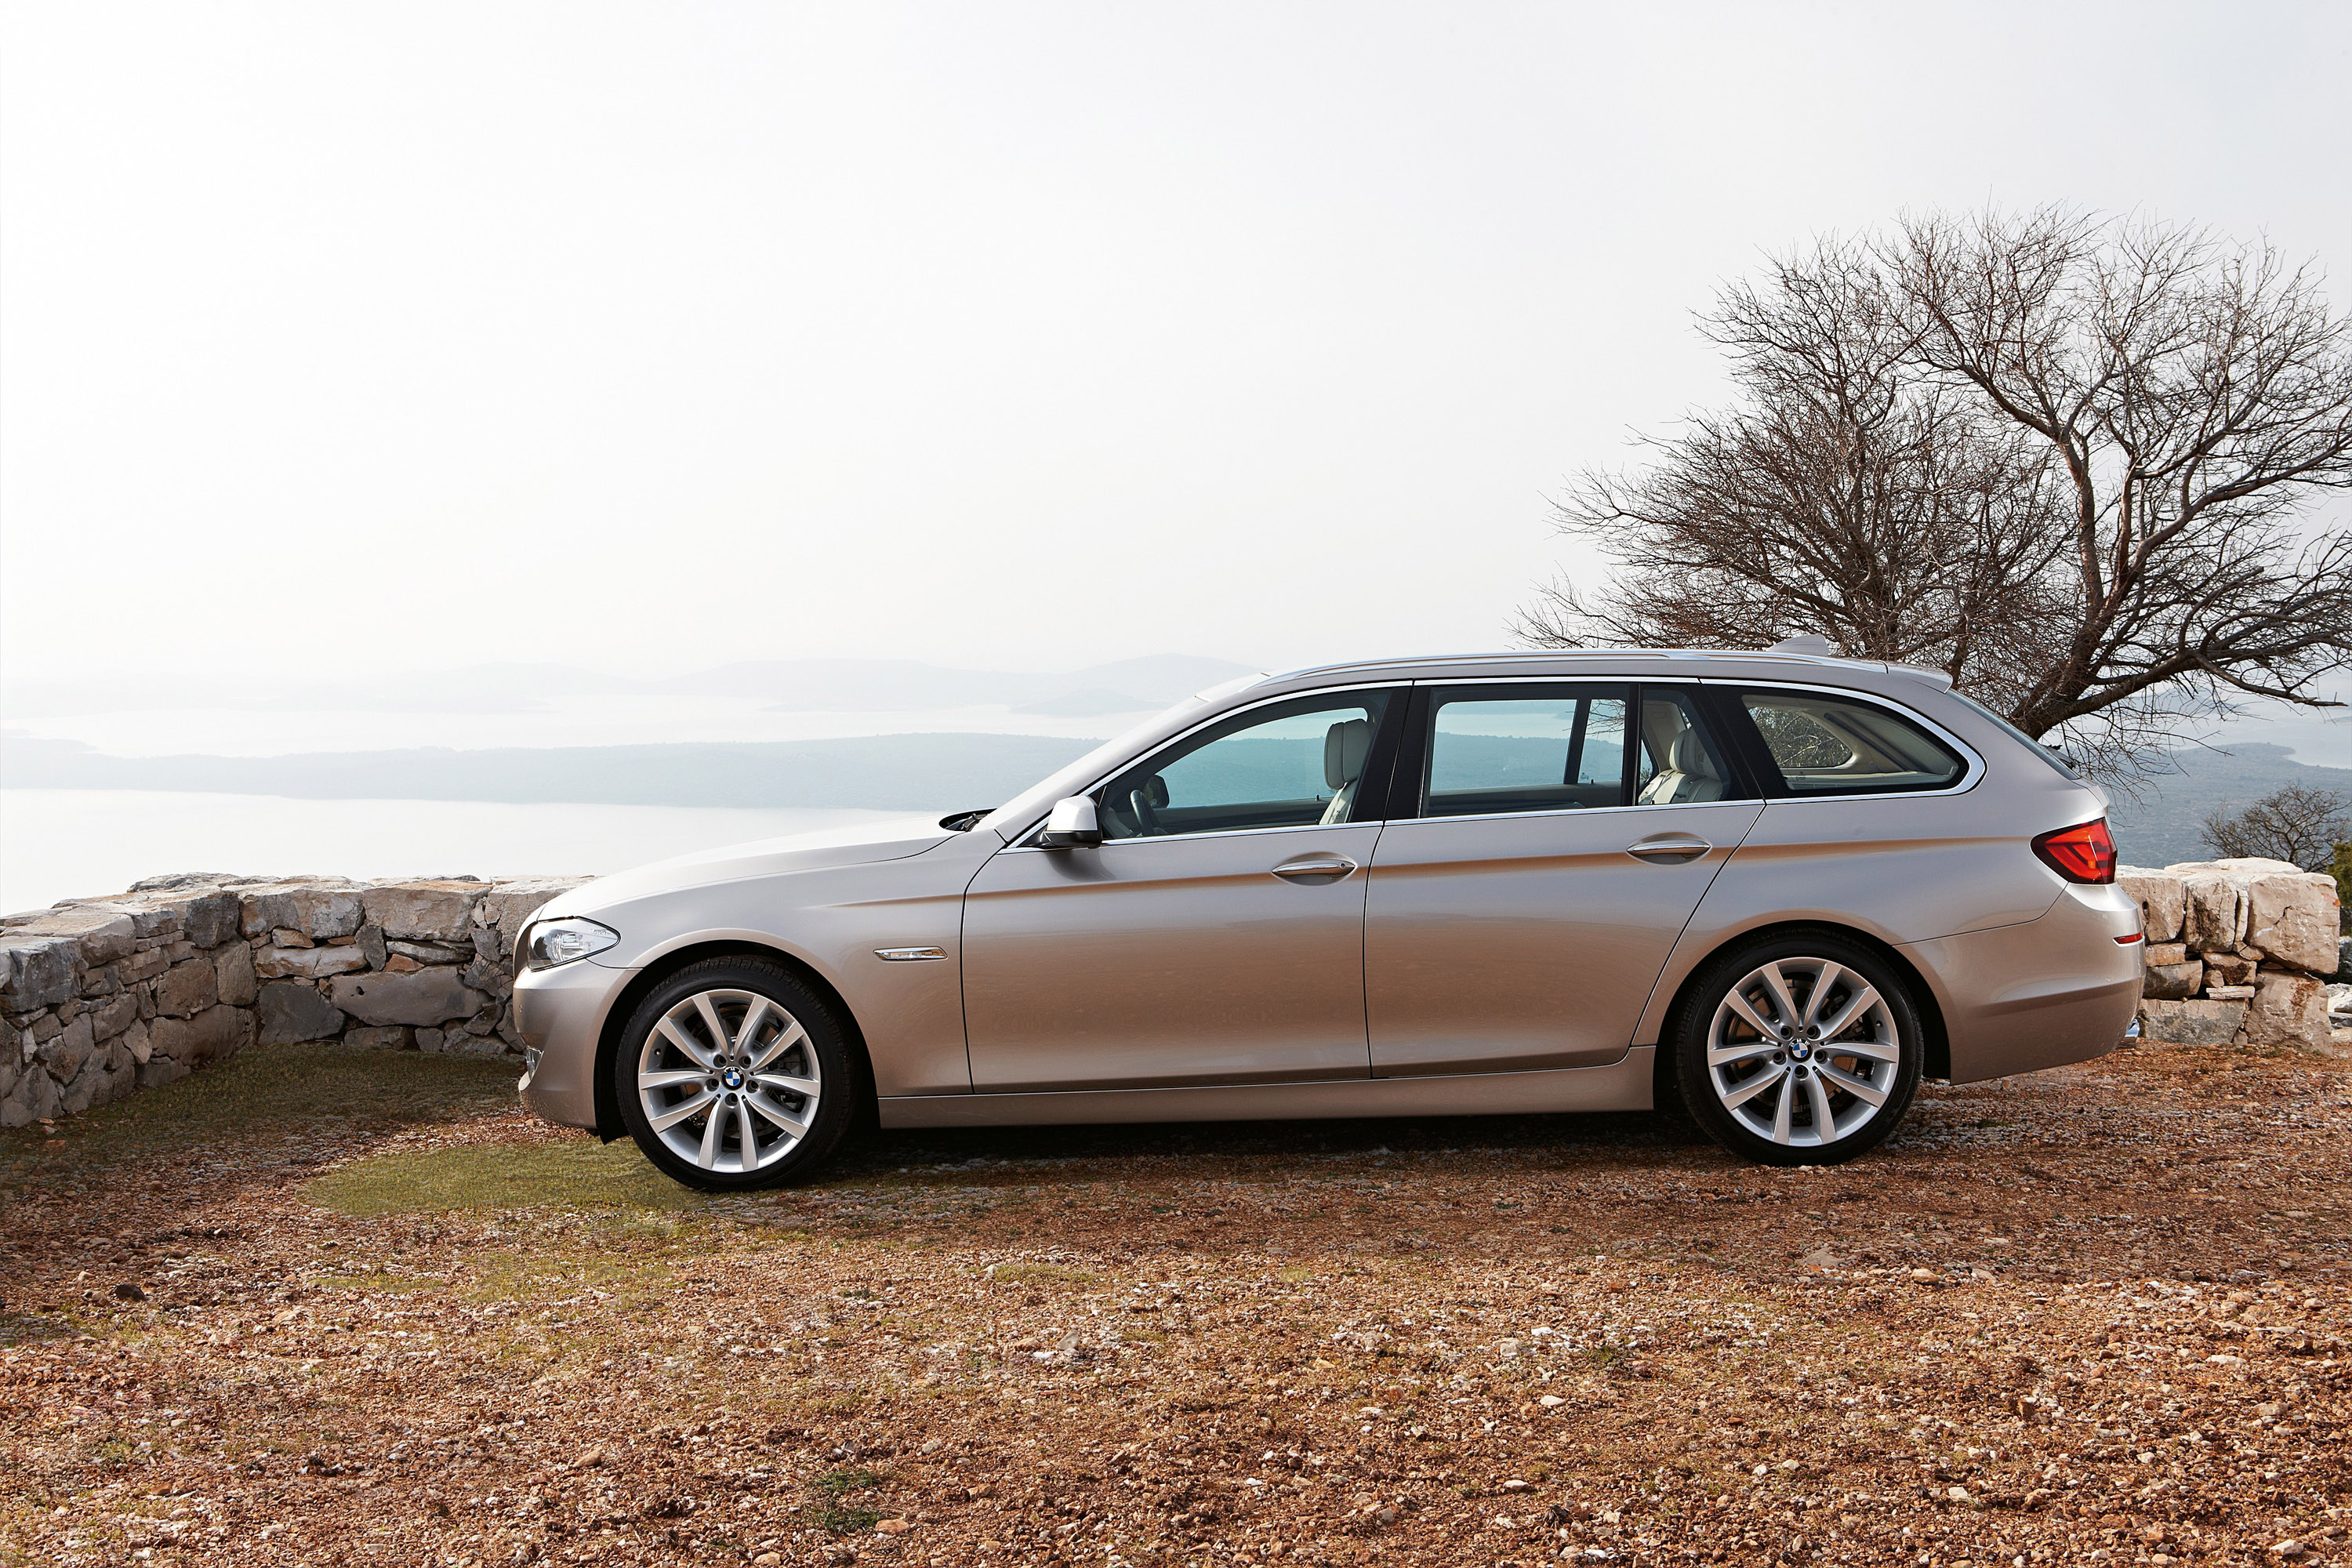 2011 BMW 5 Series Touring - Picture 35846